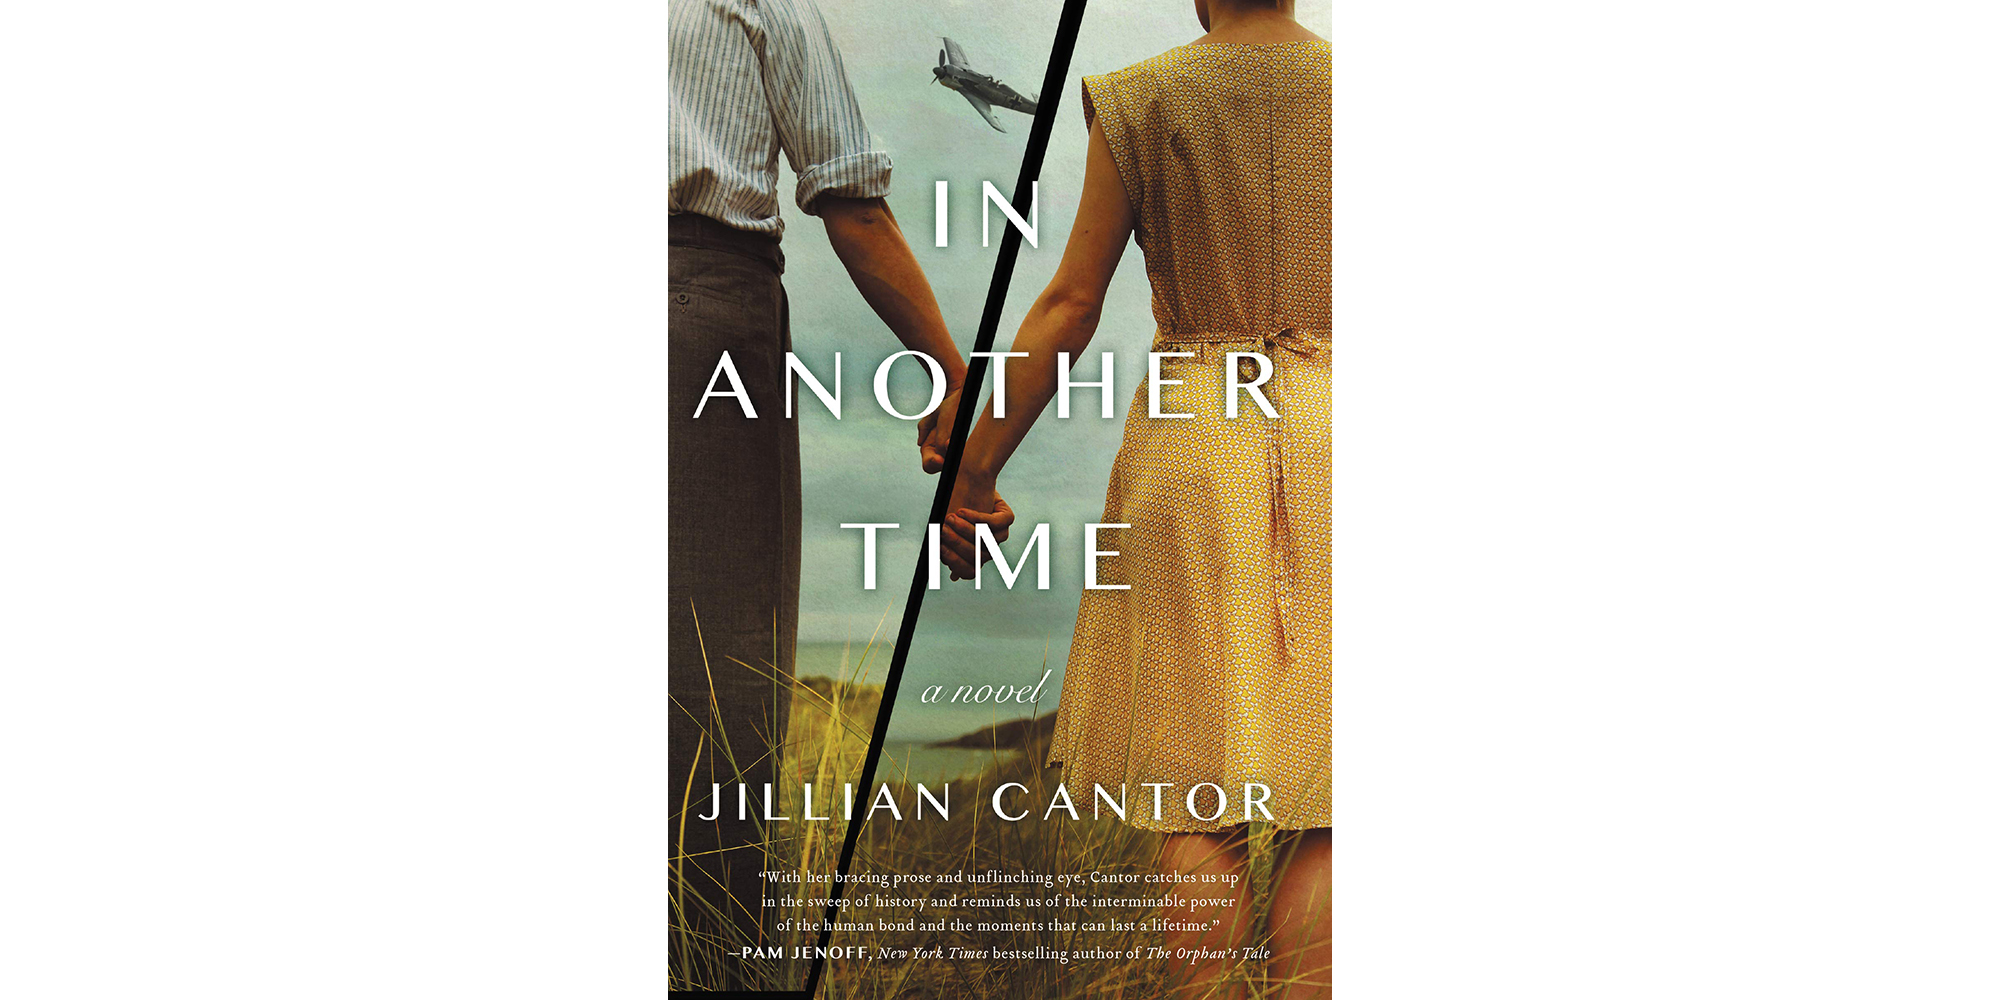 Cover of In Another Time, by Jillian Cantor